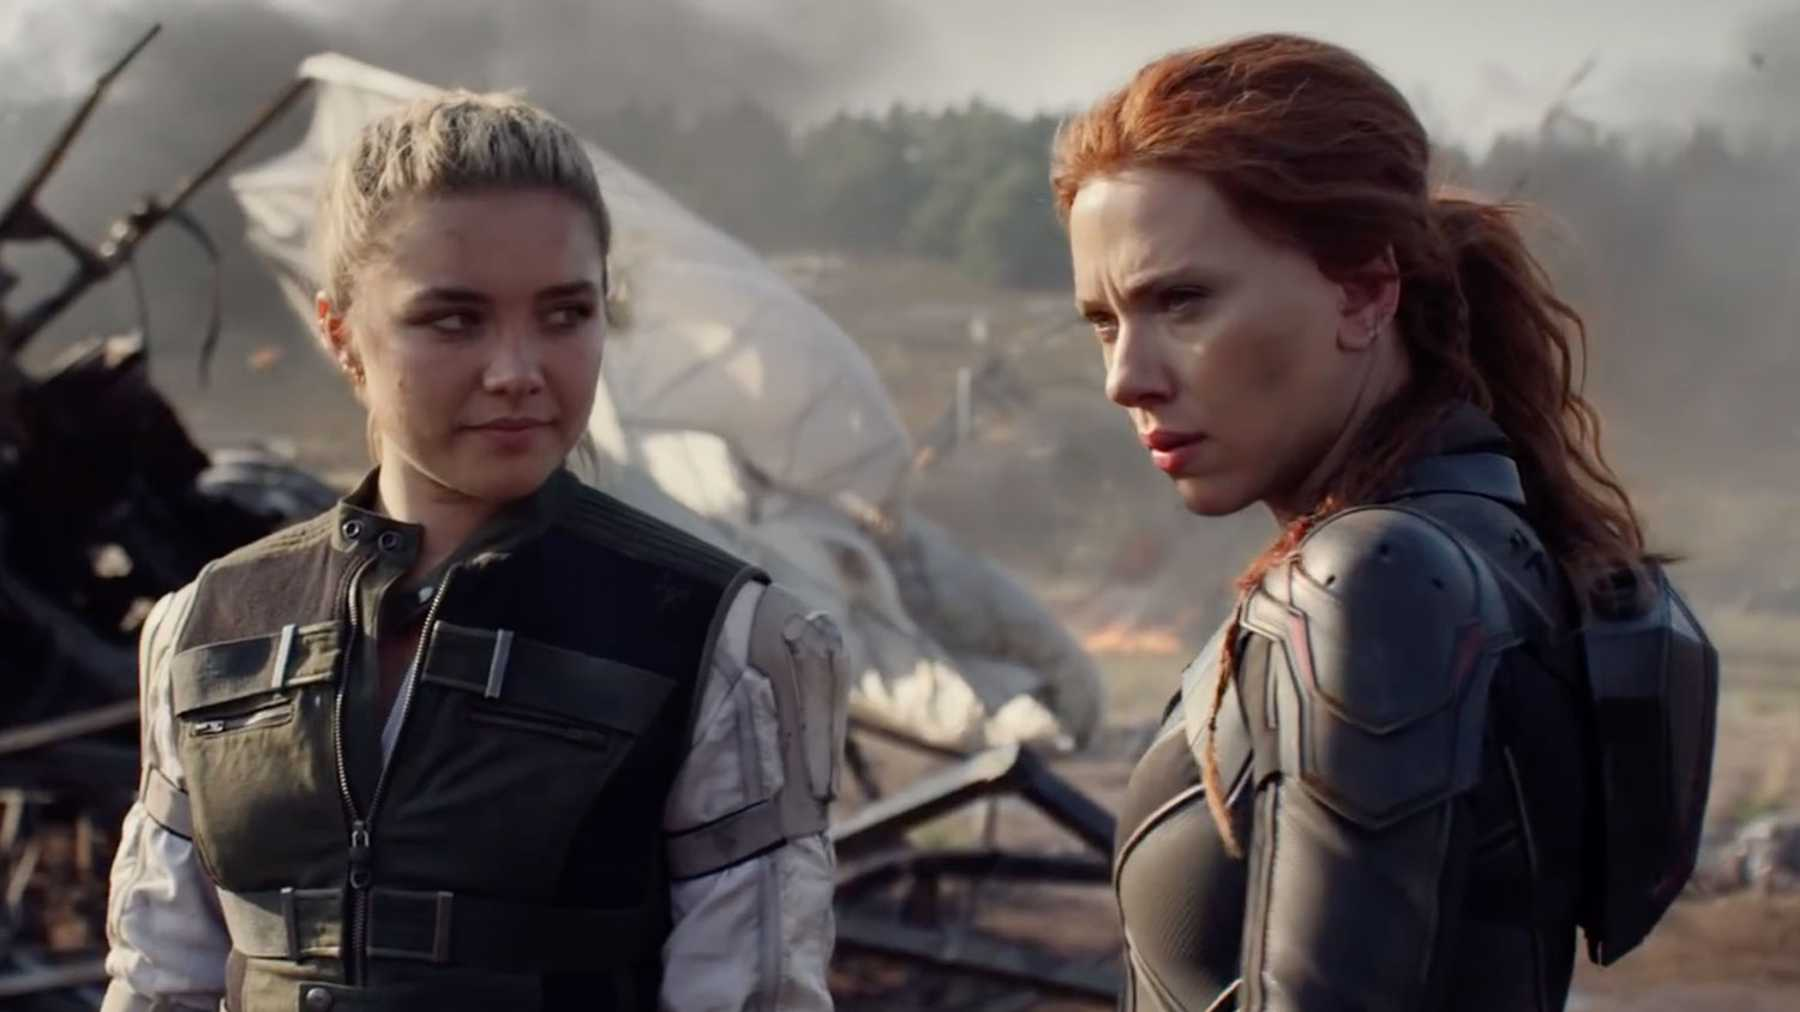 Will Black Widow comes out on Disney Plus? Does the Movie have a Disney+ Release Date?